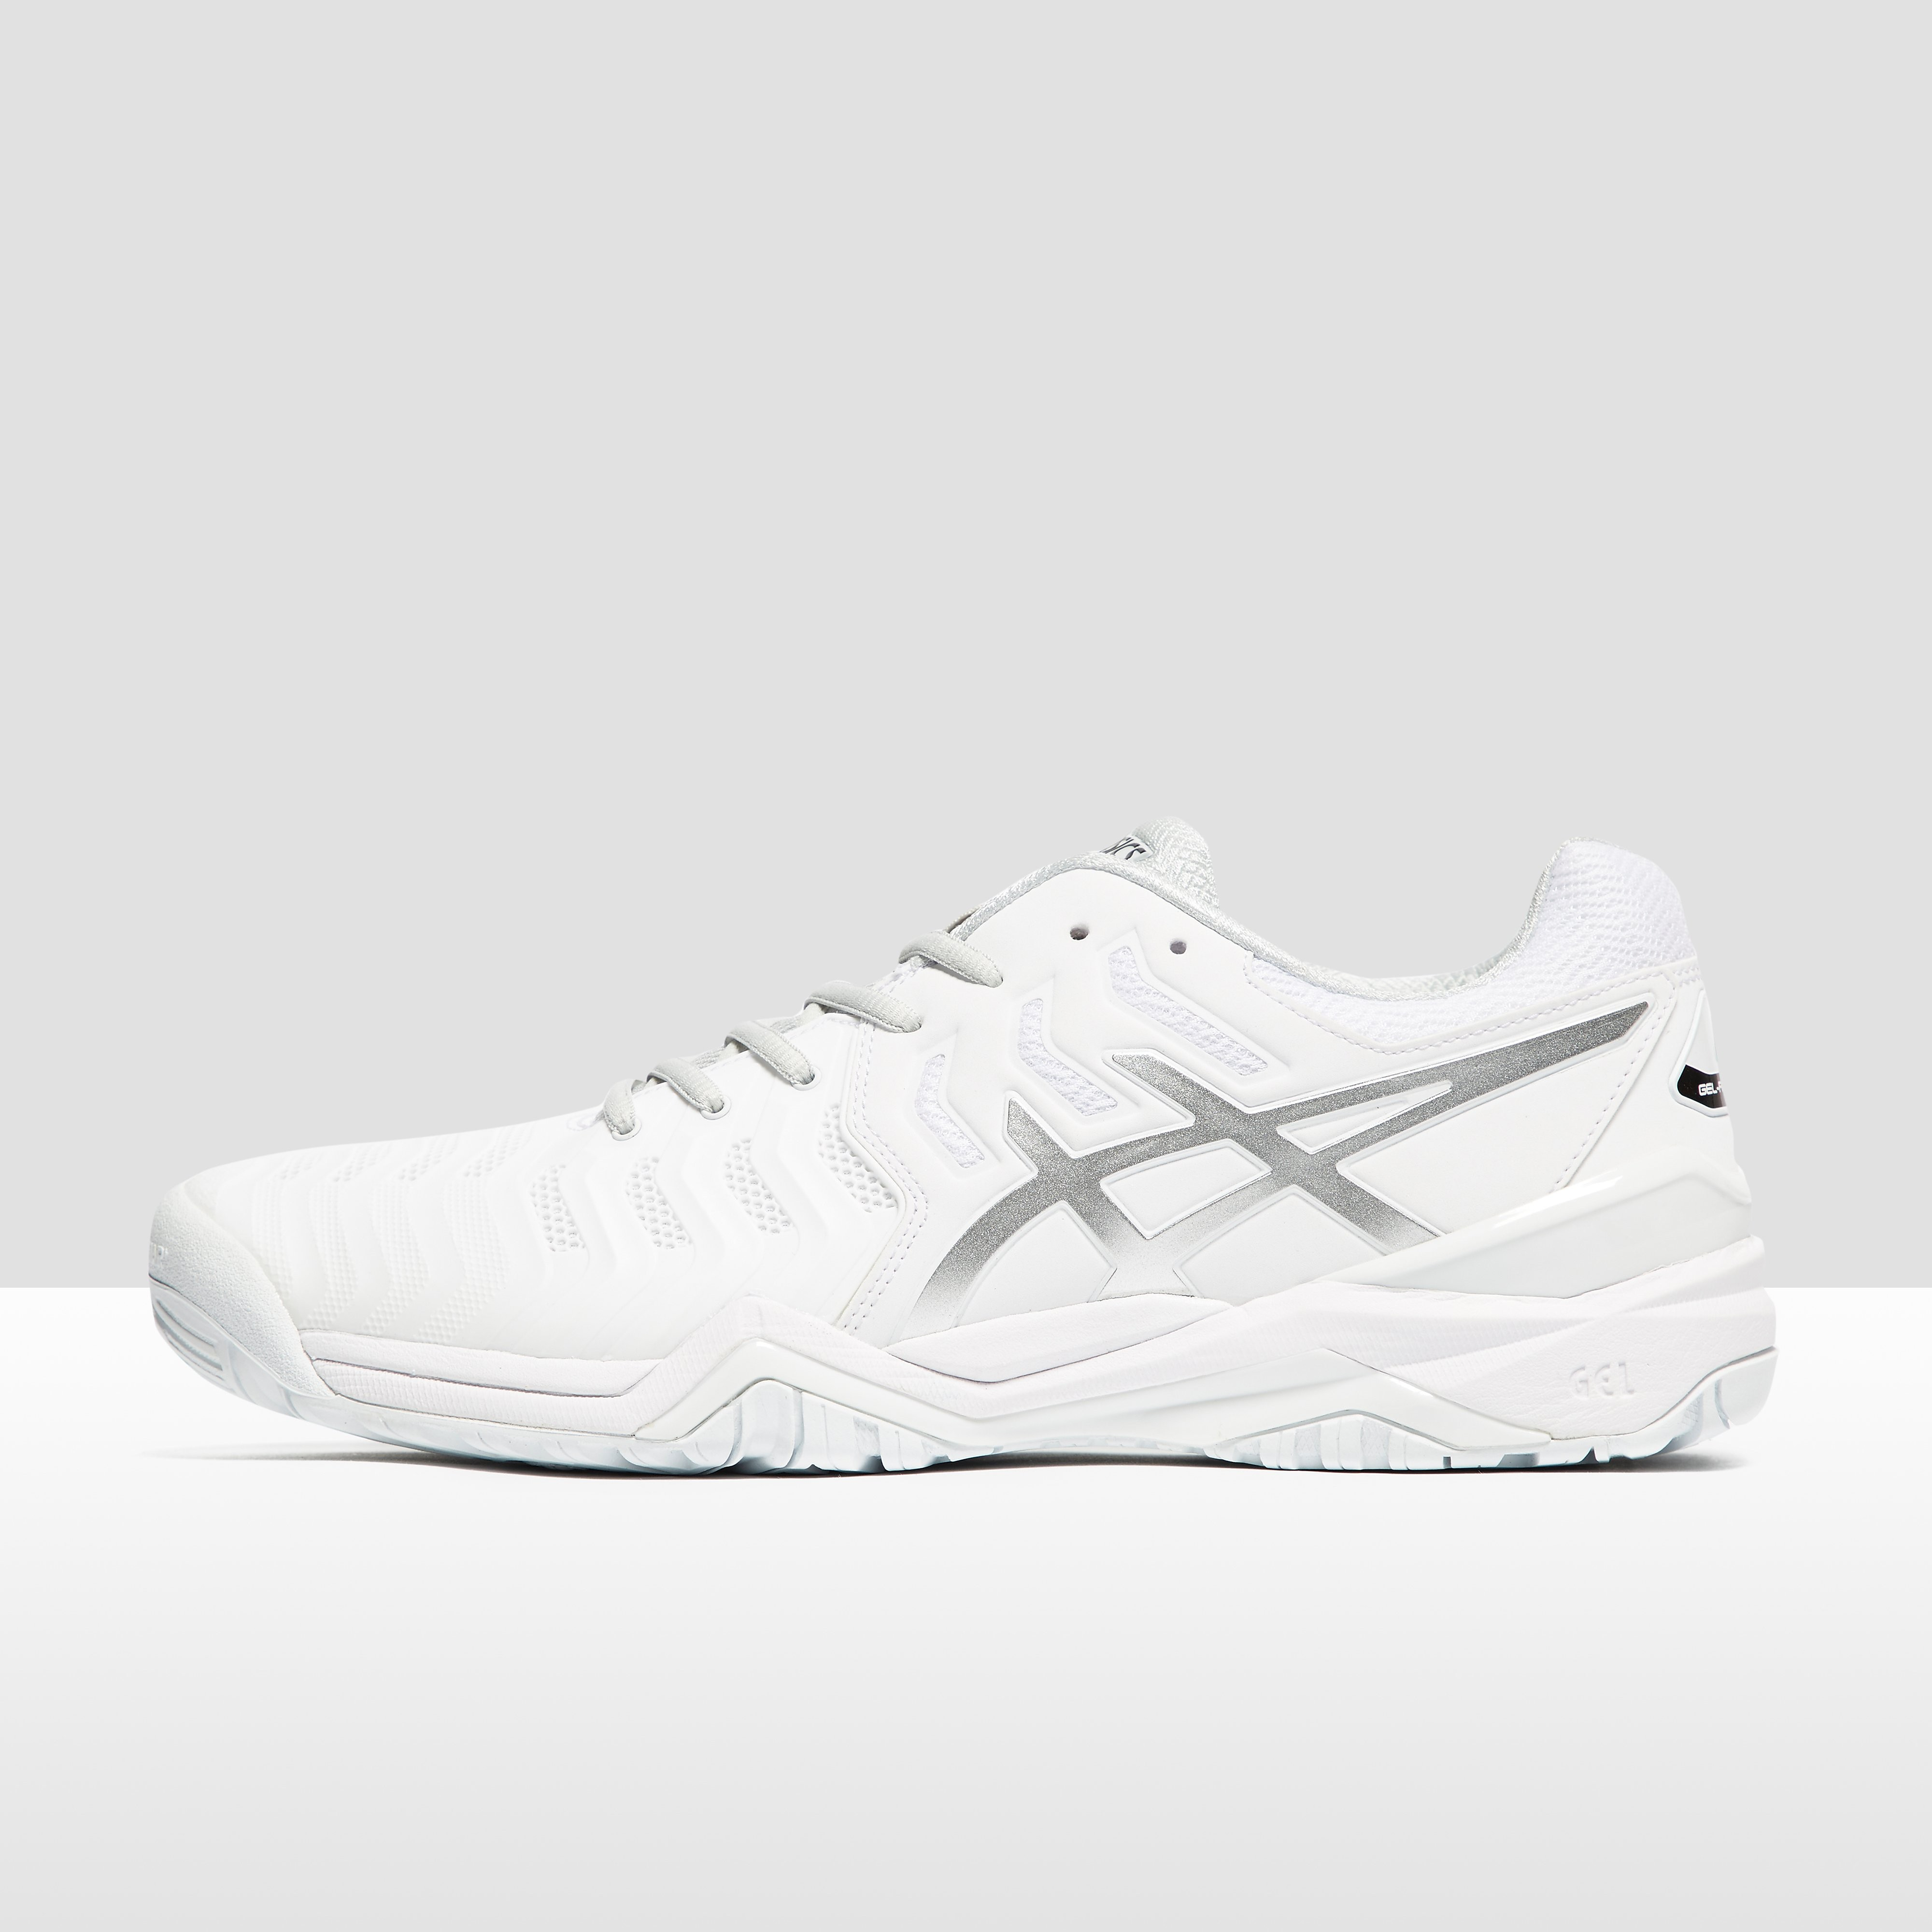 Men's ASICS Gel-Resolution 7 Tennis Shoes - WH, WH